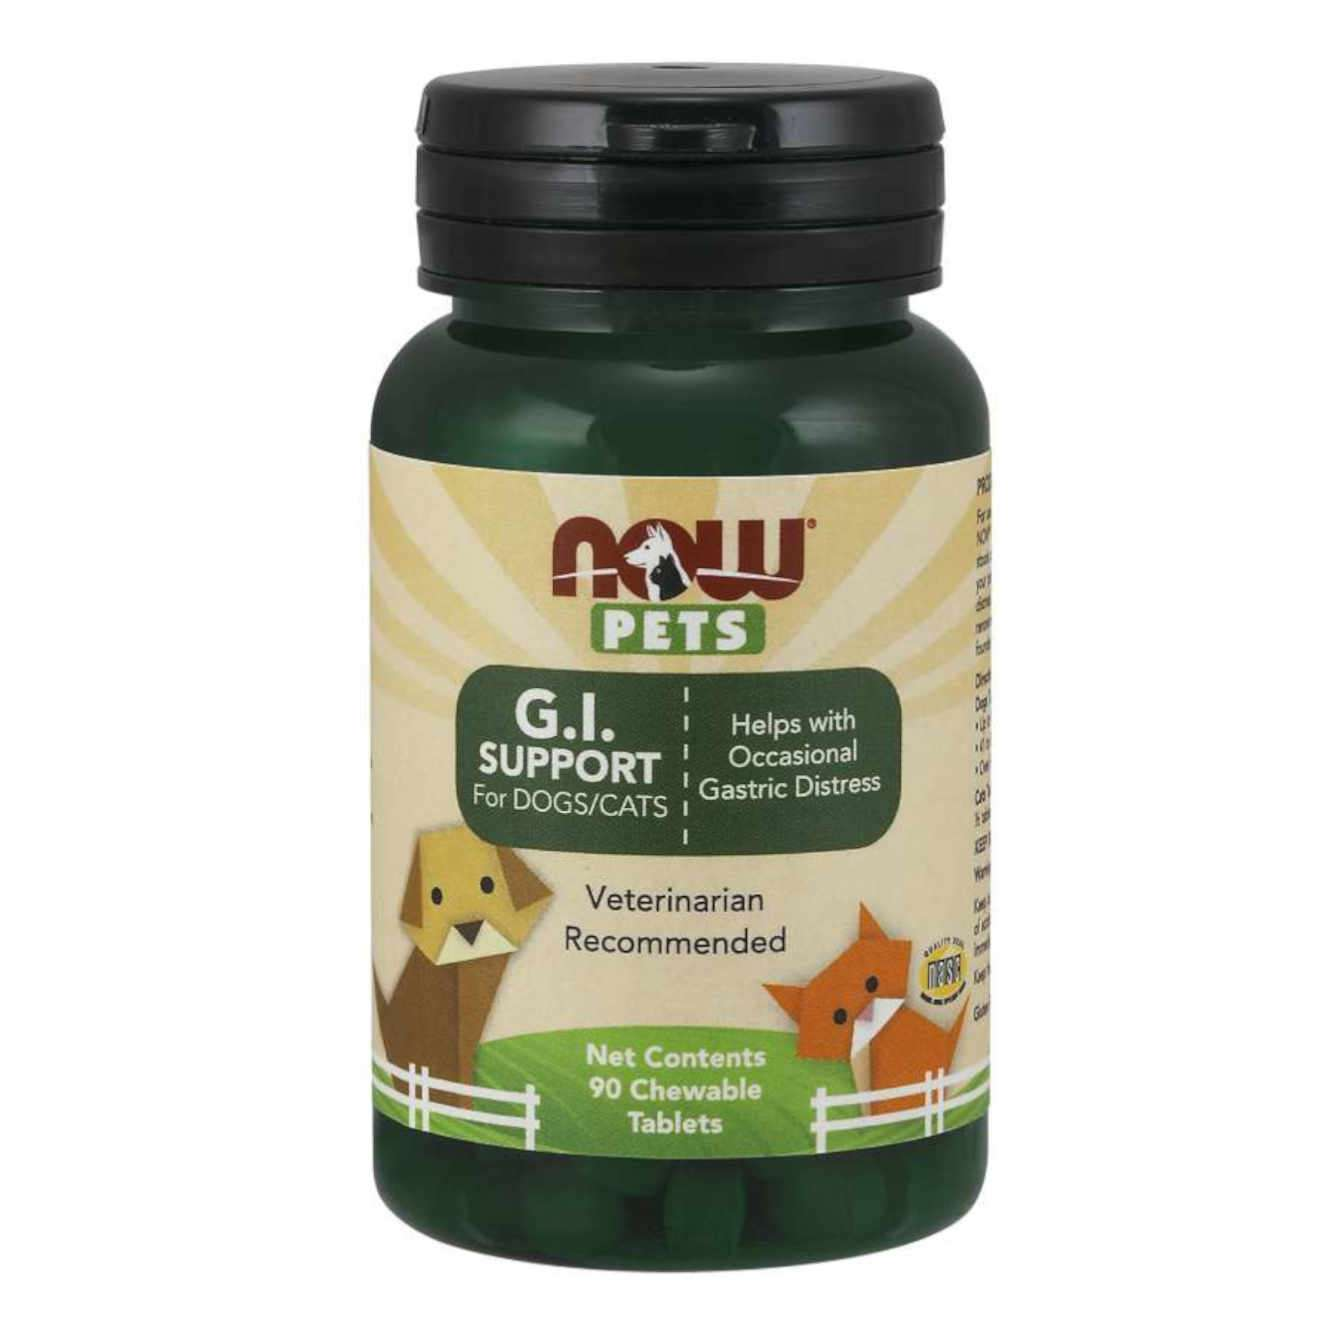 G.I. SUPPORT FOR DOGS/CATS - 90 tabs masticabili